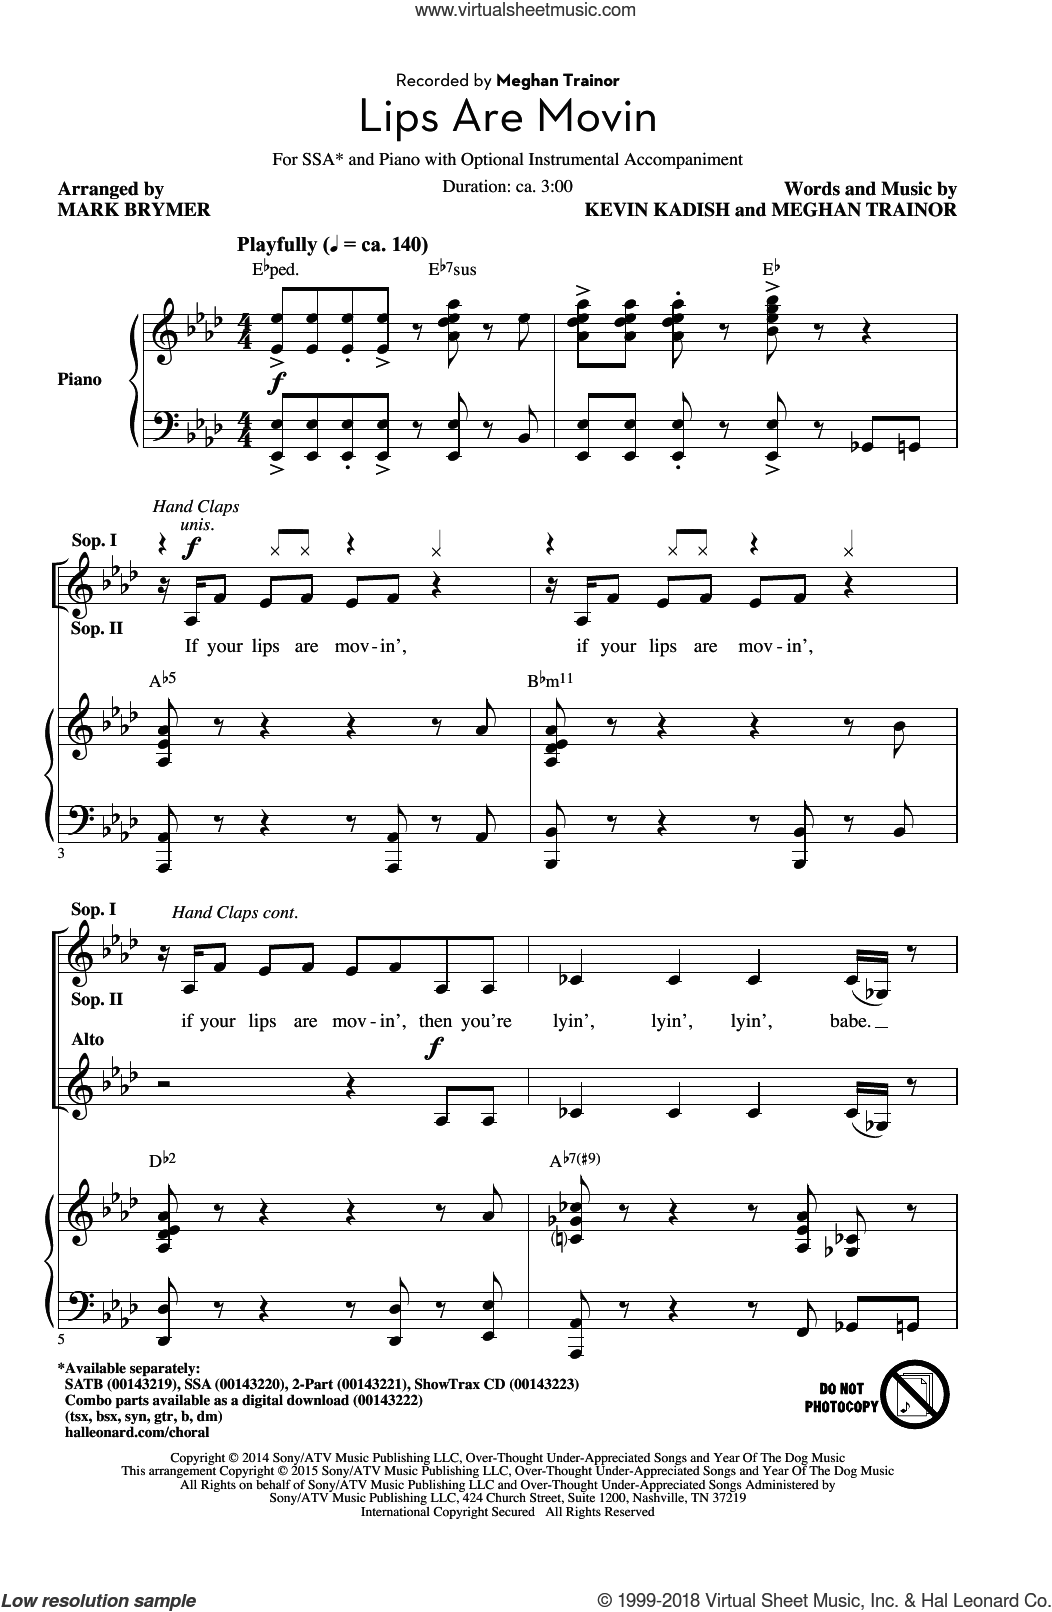 Lips Are Movin sheet music for choir and piano (SSA) by Kevin Kadish